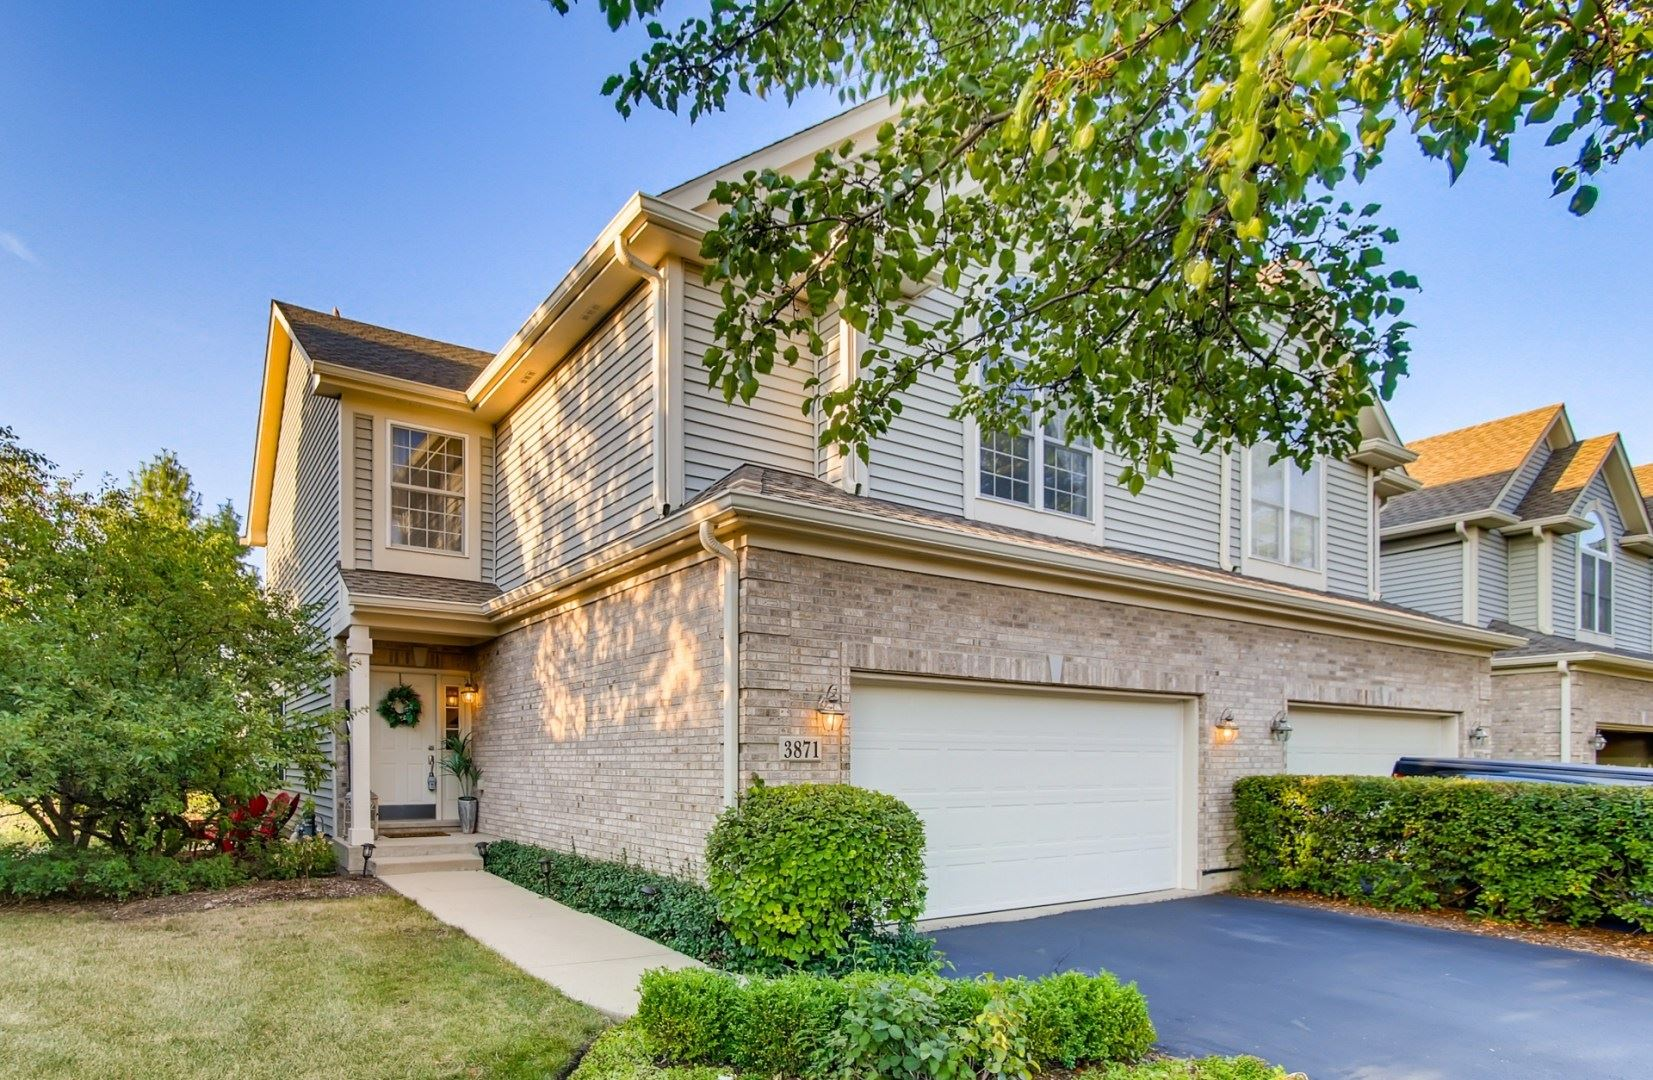 3871 Willow View Drive, Lake in the Hills, IL 60156 - MLS#: 10795772